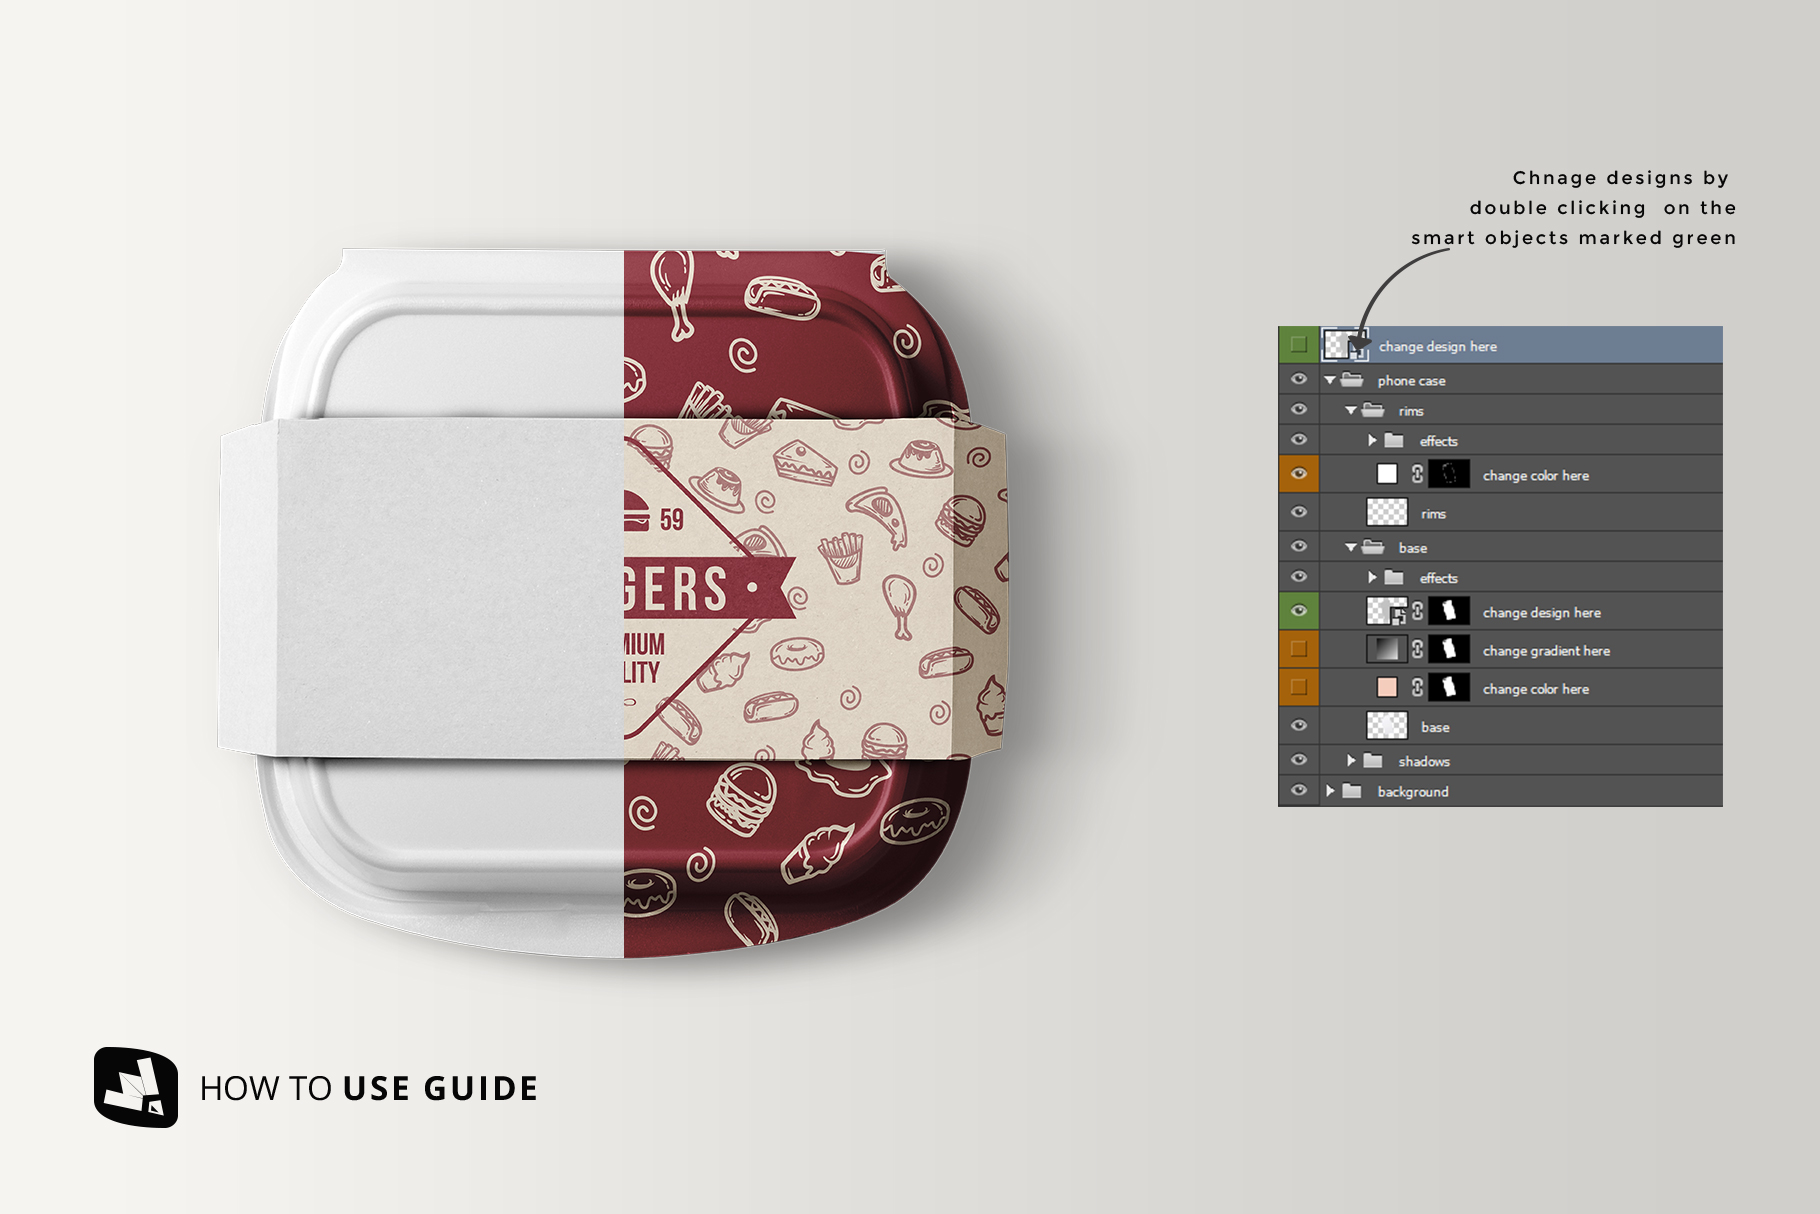 how to change label design of the fast food container packaging mockup